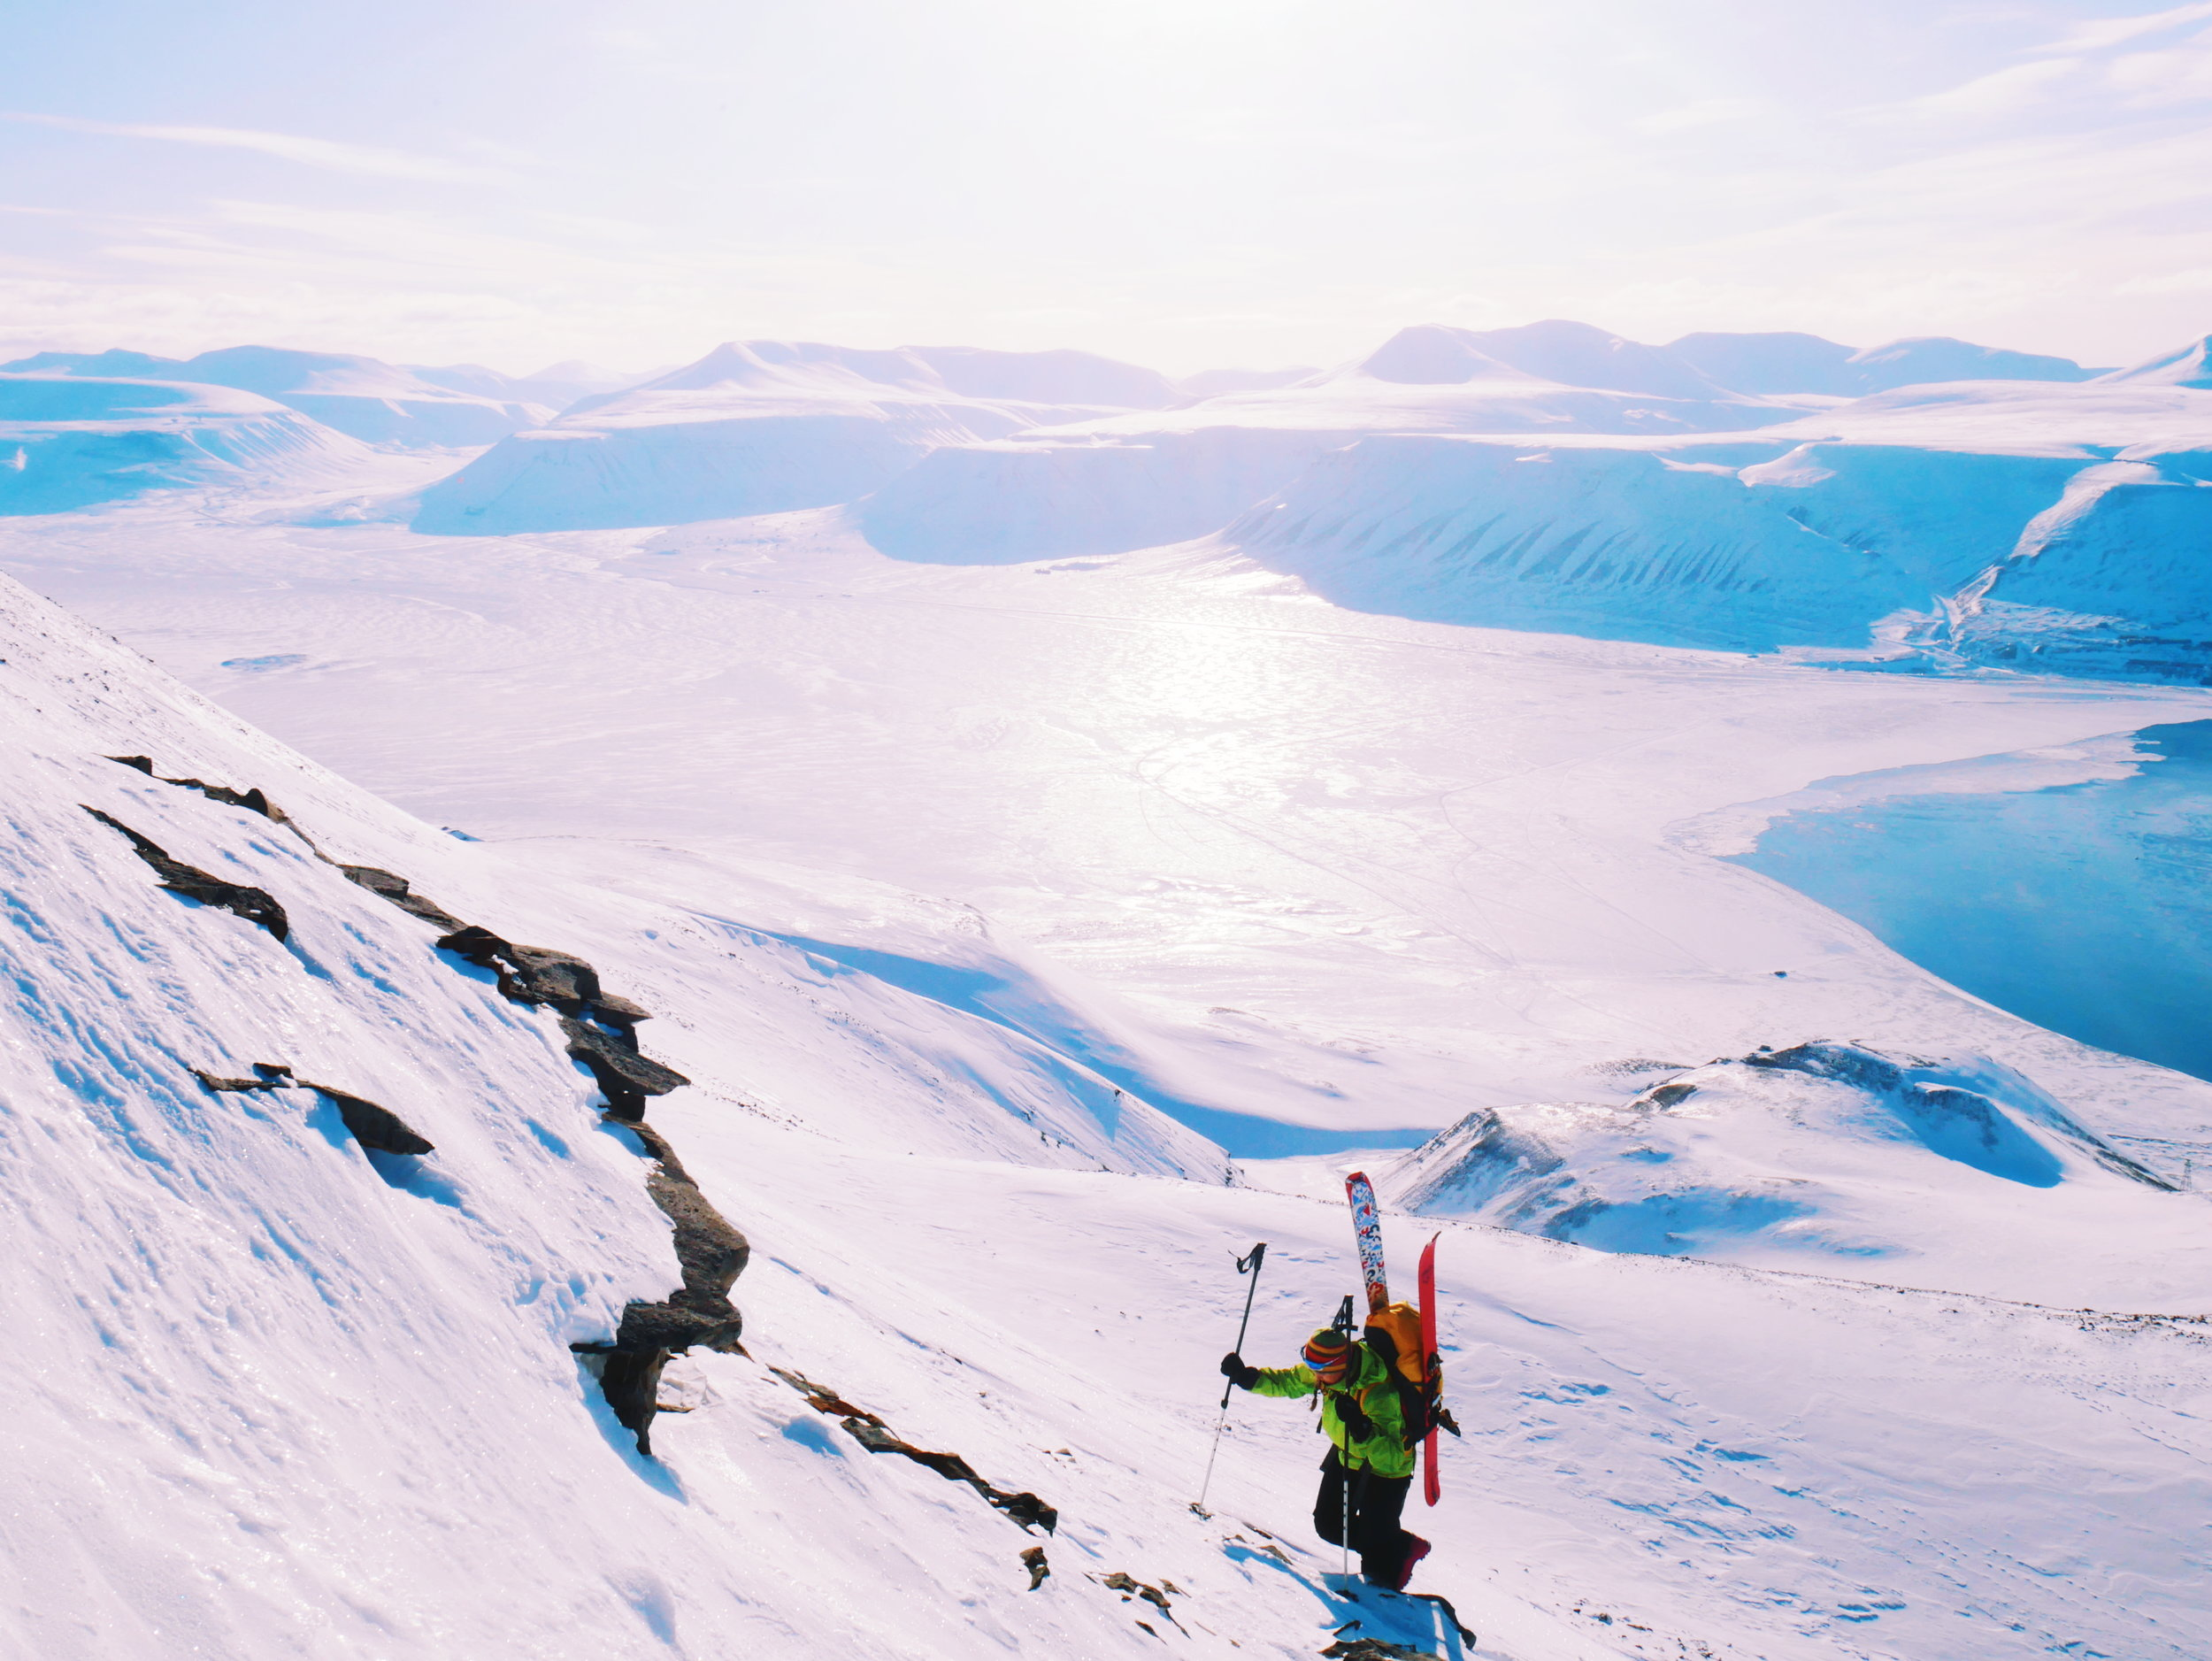 Mathea in Hiorthtinden, Svalbard, Norway